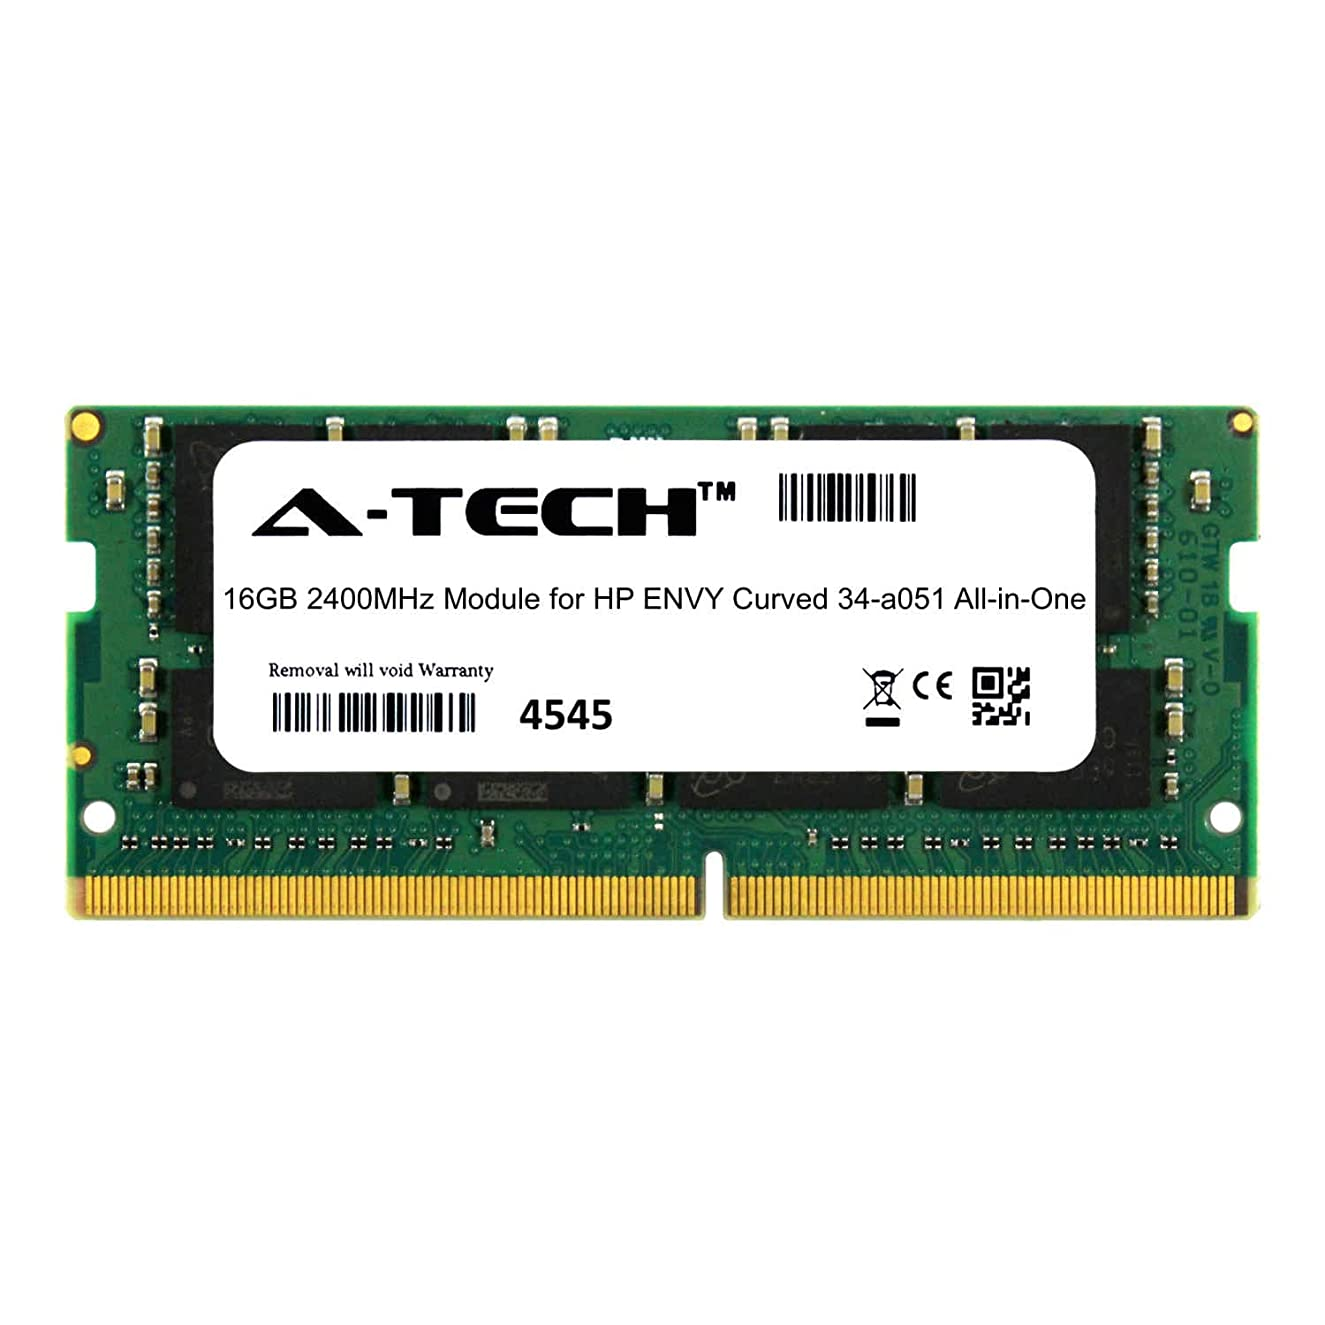 A-Tech 16GB Module for HP Envy Curved 34-a051 All-in-One (AIO) Compatible DDR4 2400Mhz Memory Ram (ATMS265704A25831X1)